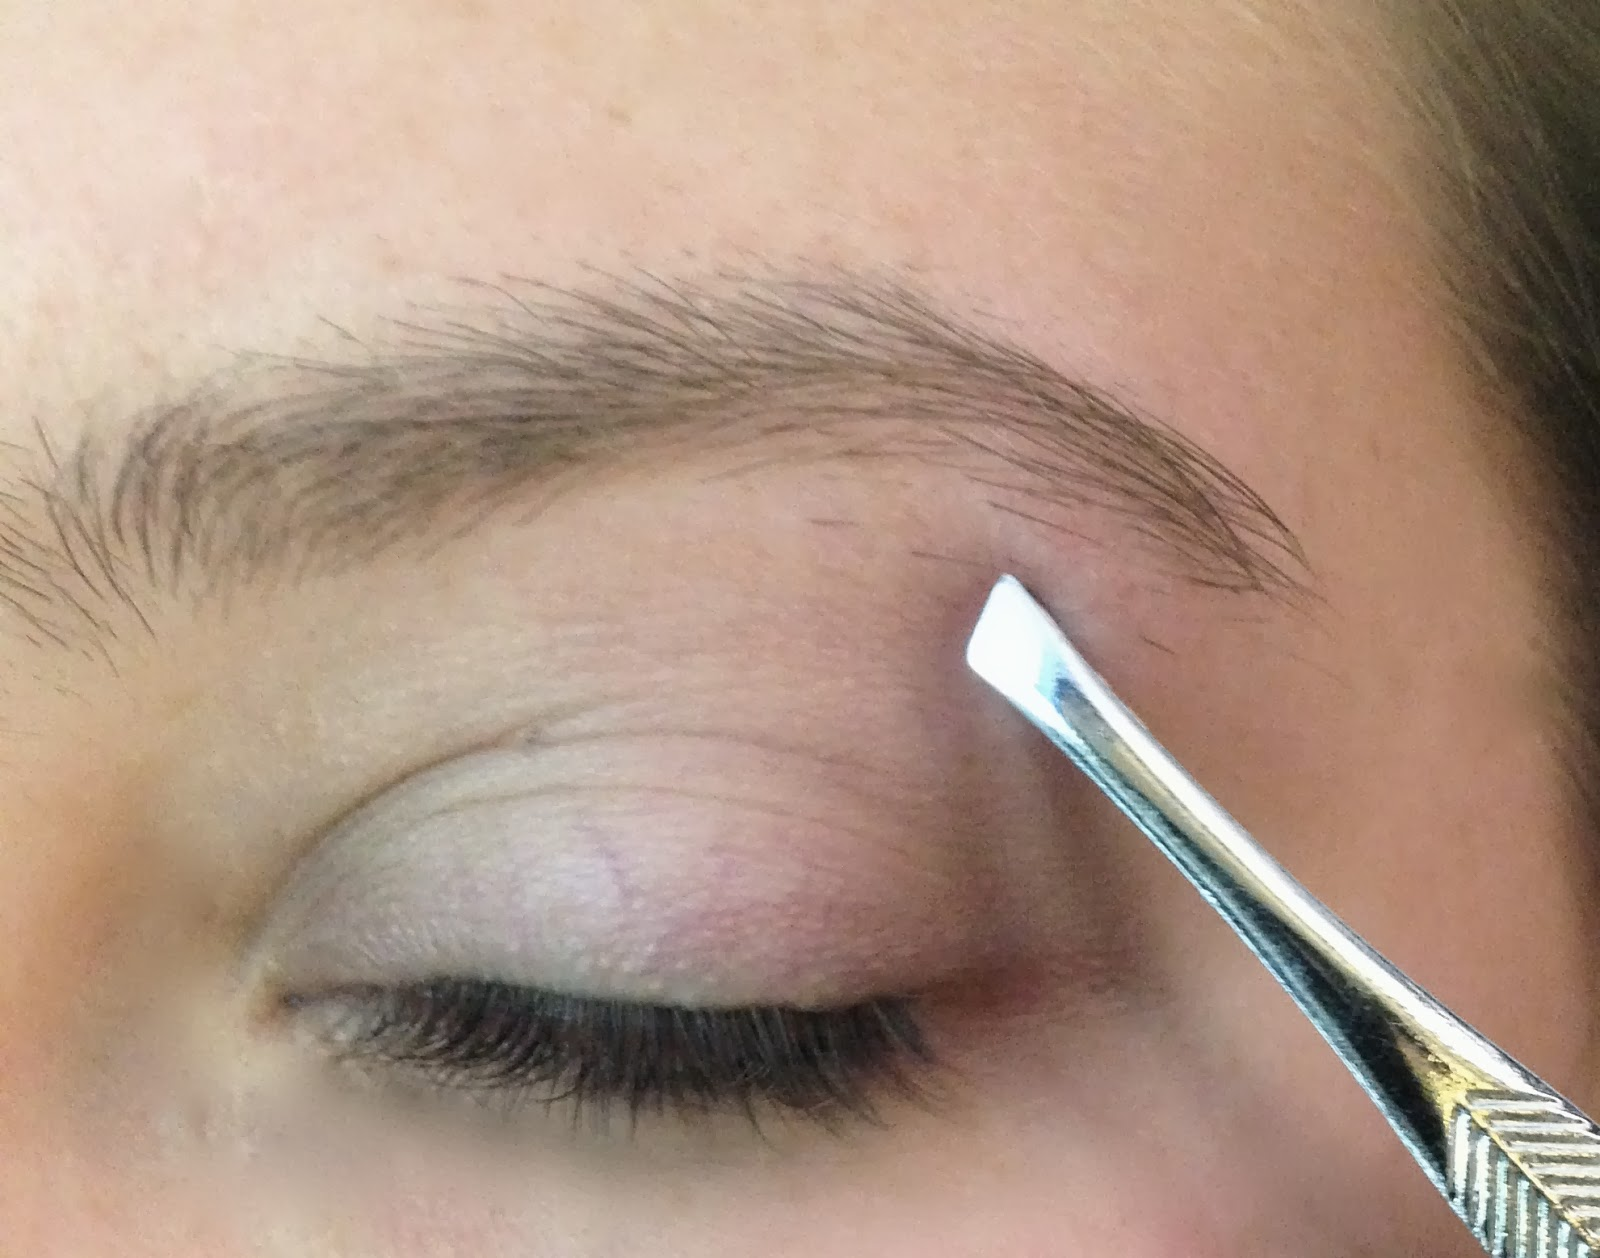 Cheyenne Fitness How To Groom Your Eyebrows At Home